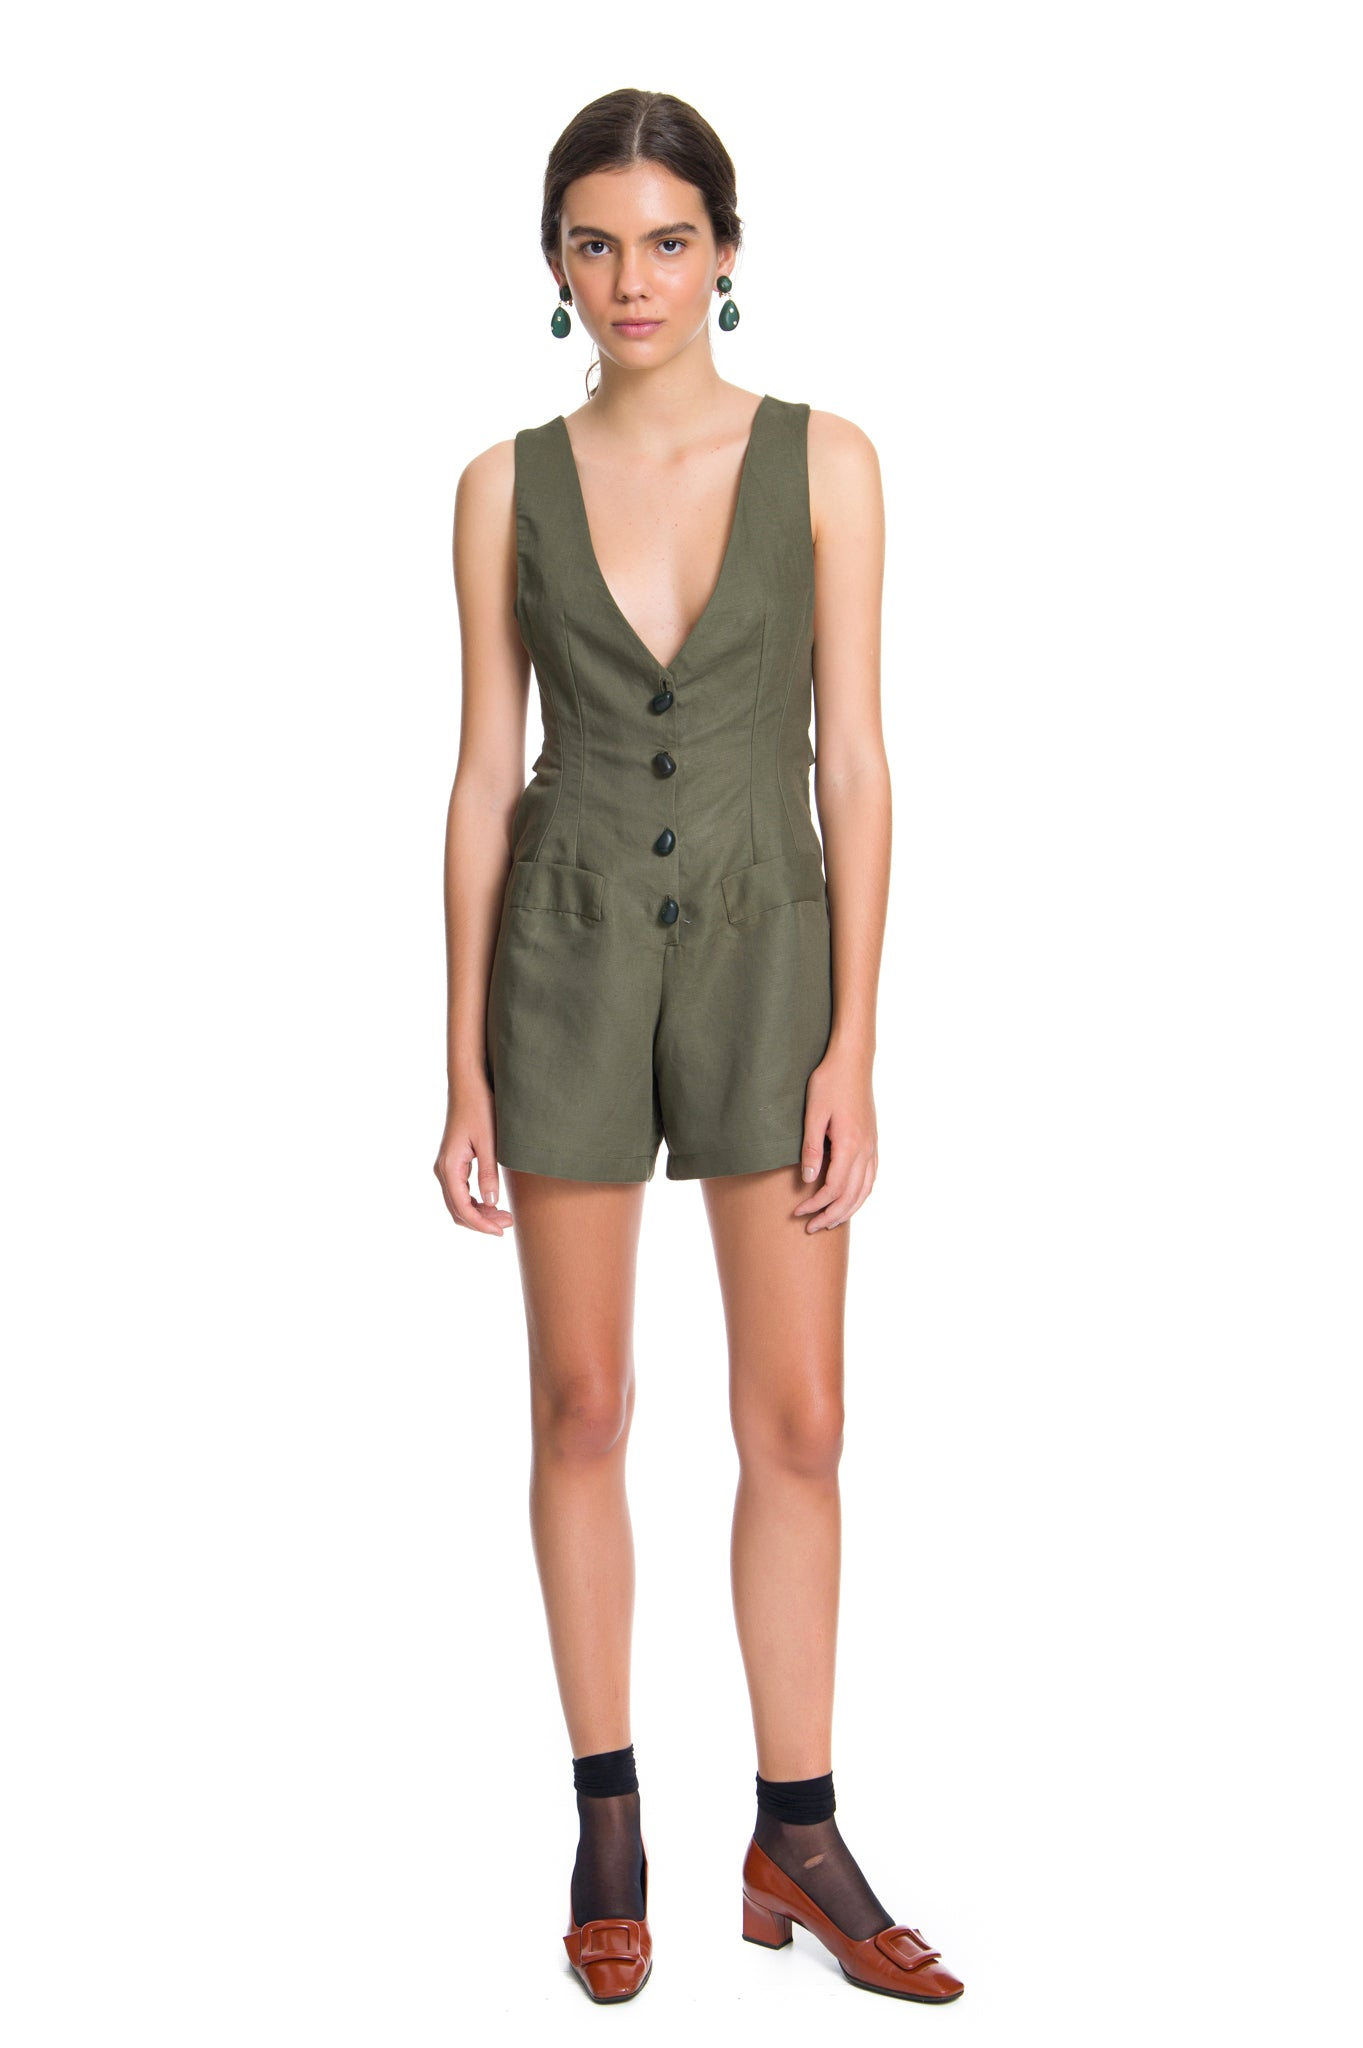 COCTEAU PLAYSUIT